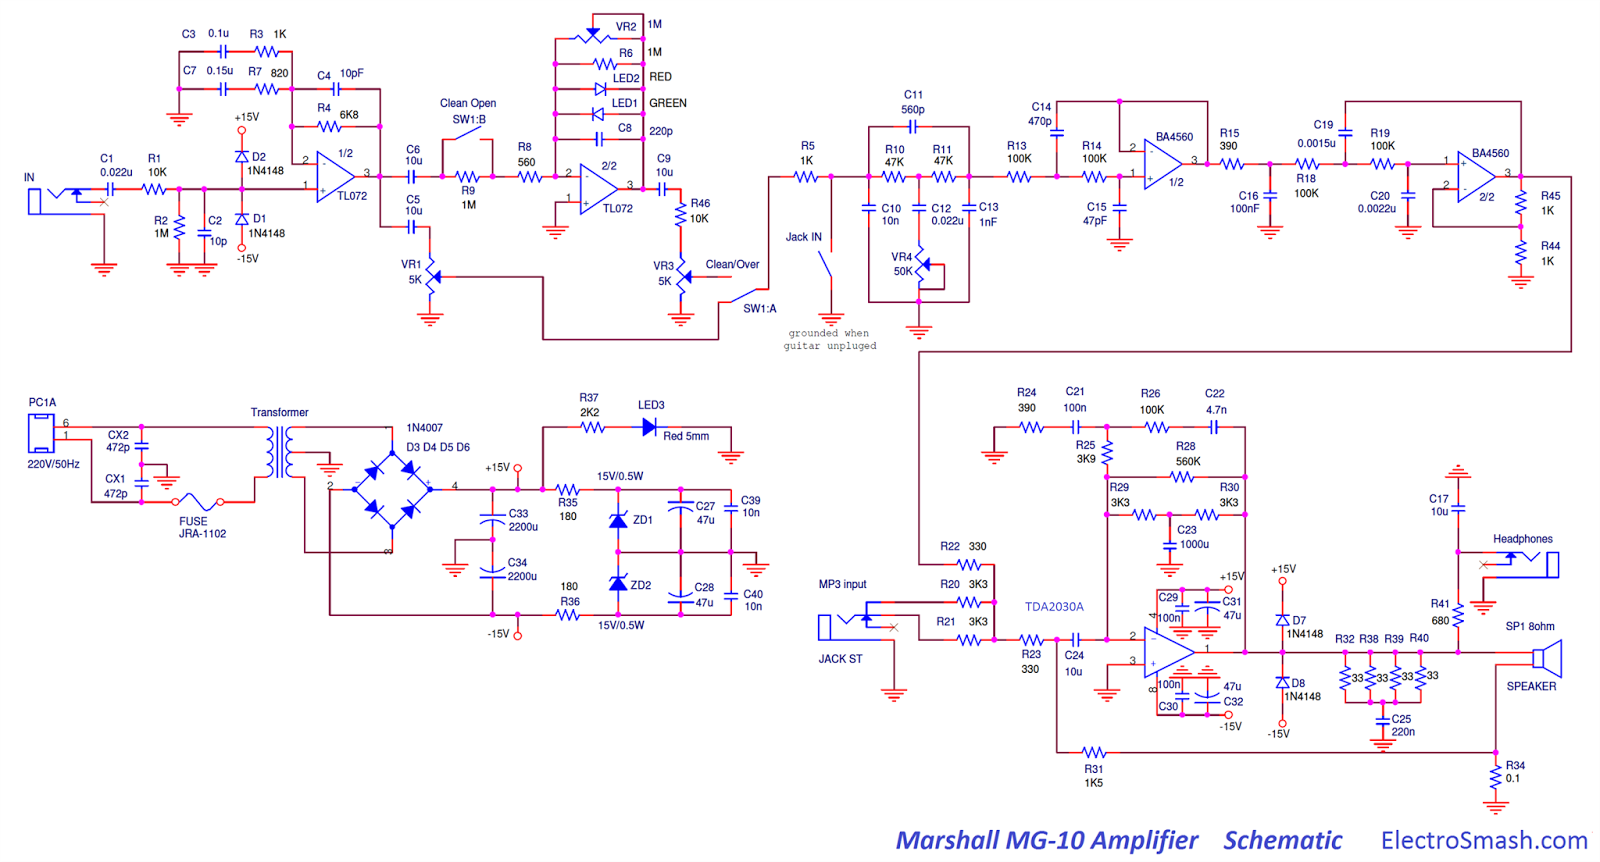 marshall mg10 schematic marshall mg10 modification guitar dreamer  at alyssarenee.co